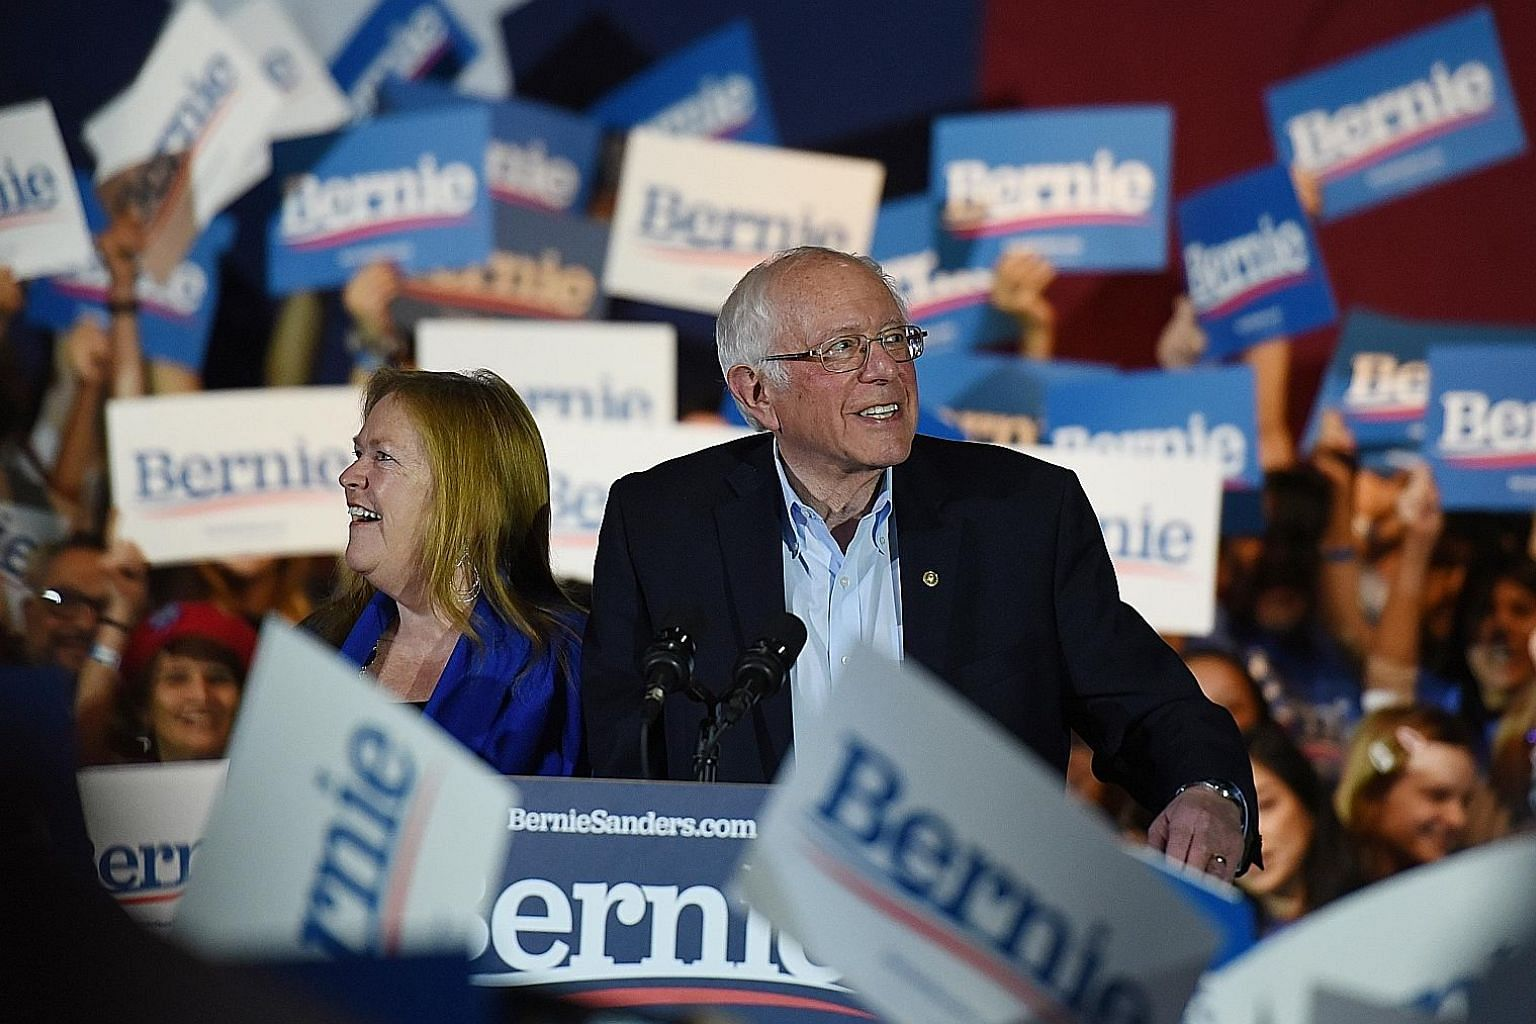 Democratic presidential hopeful Bernie Sanders celebrating with wife Jane after being declared the winner of the Nevada caucus at a campaign rally in San Antonio, Texas, on Saturday. The Vermont Senator had more than double the votes of his rivals as